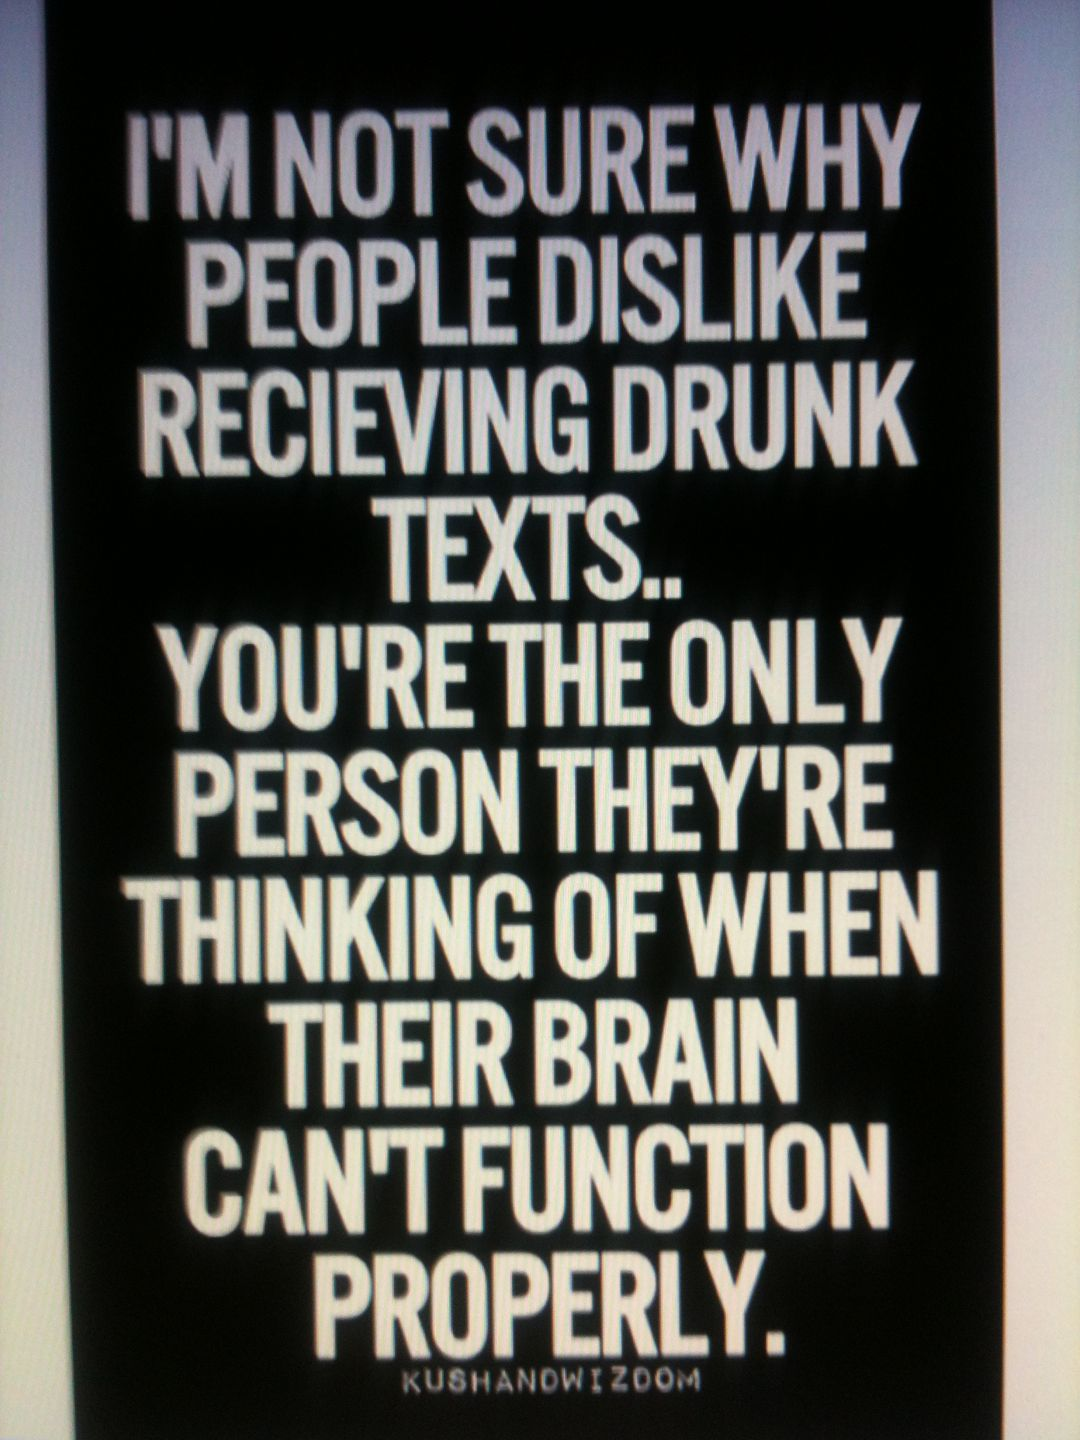 Awwwww!!! I never thought of this! But I also love getting drunk texts